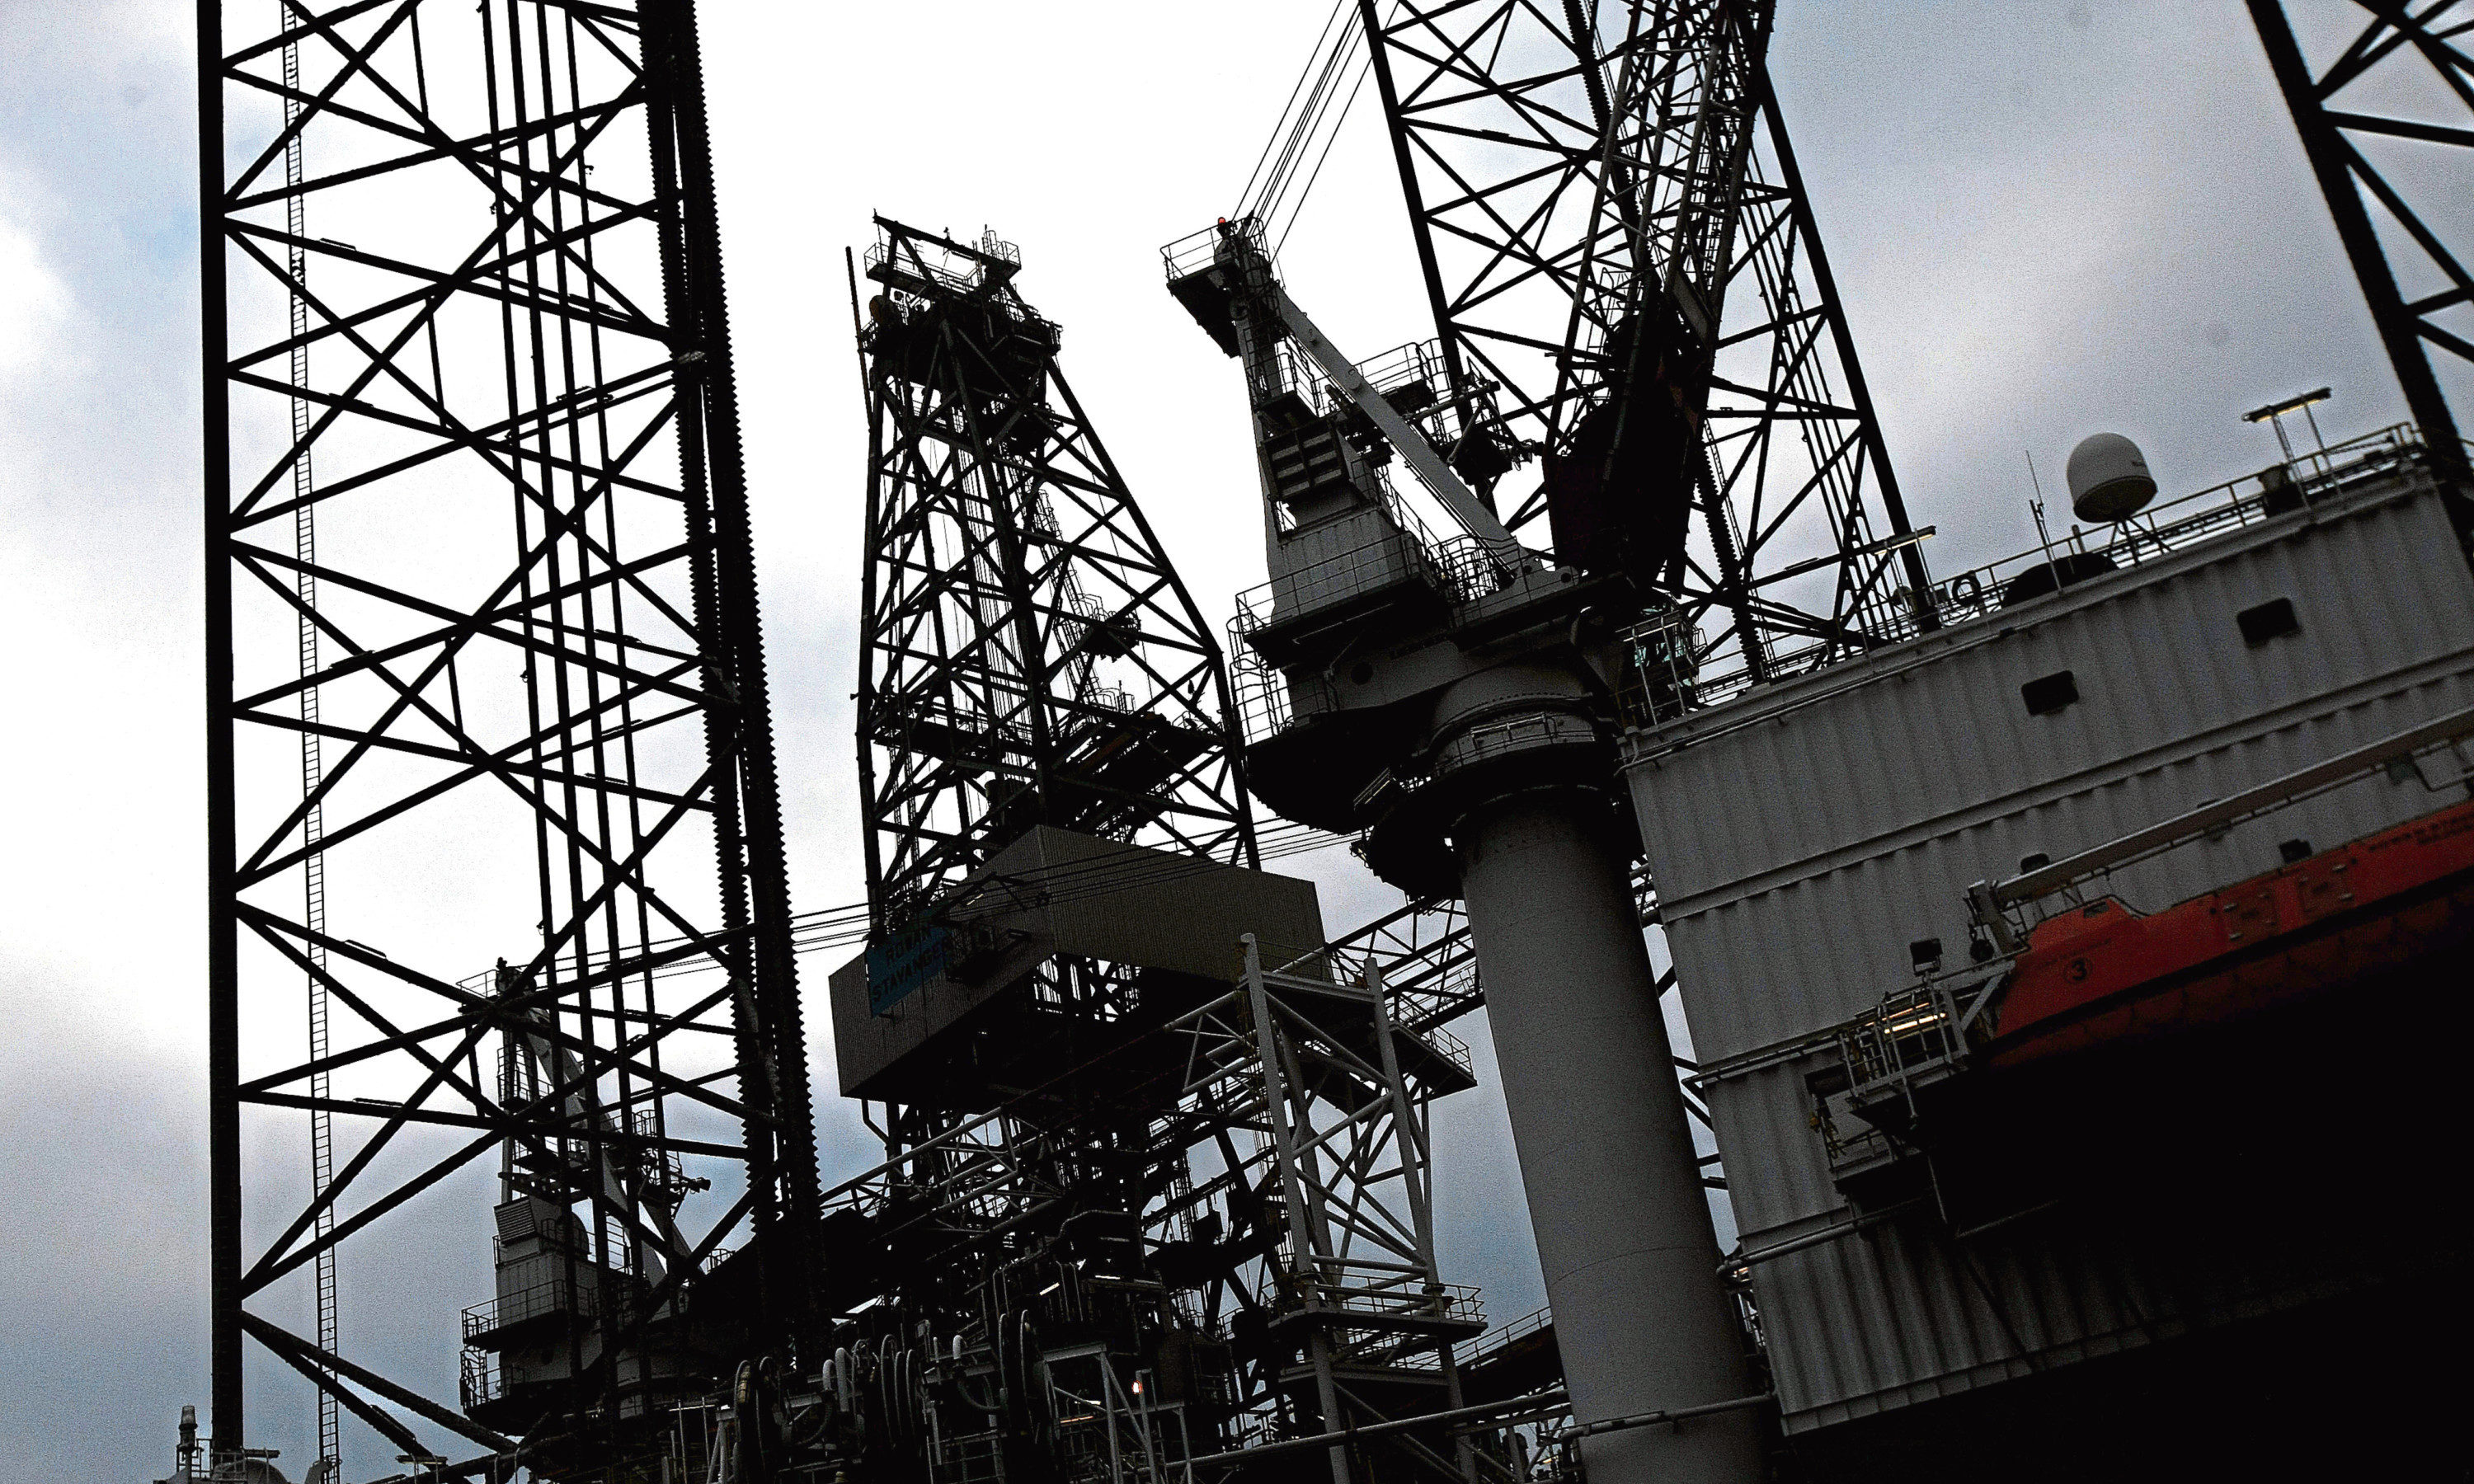 Oil rigs at the Port of Dundee (stock image)